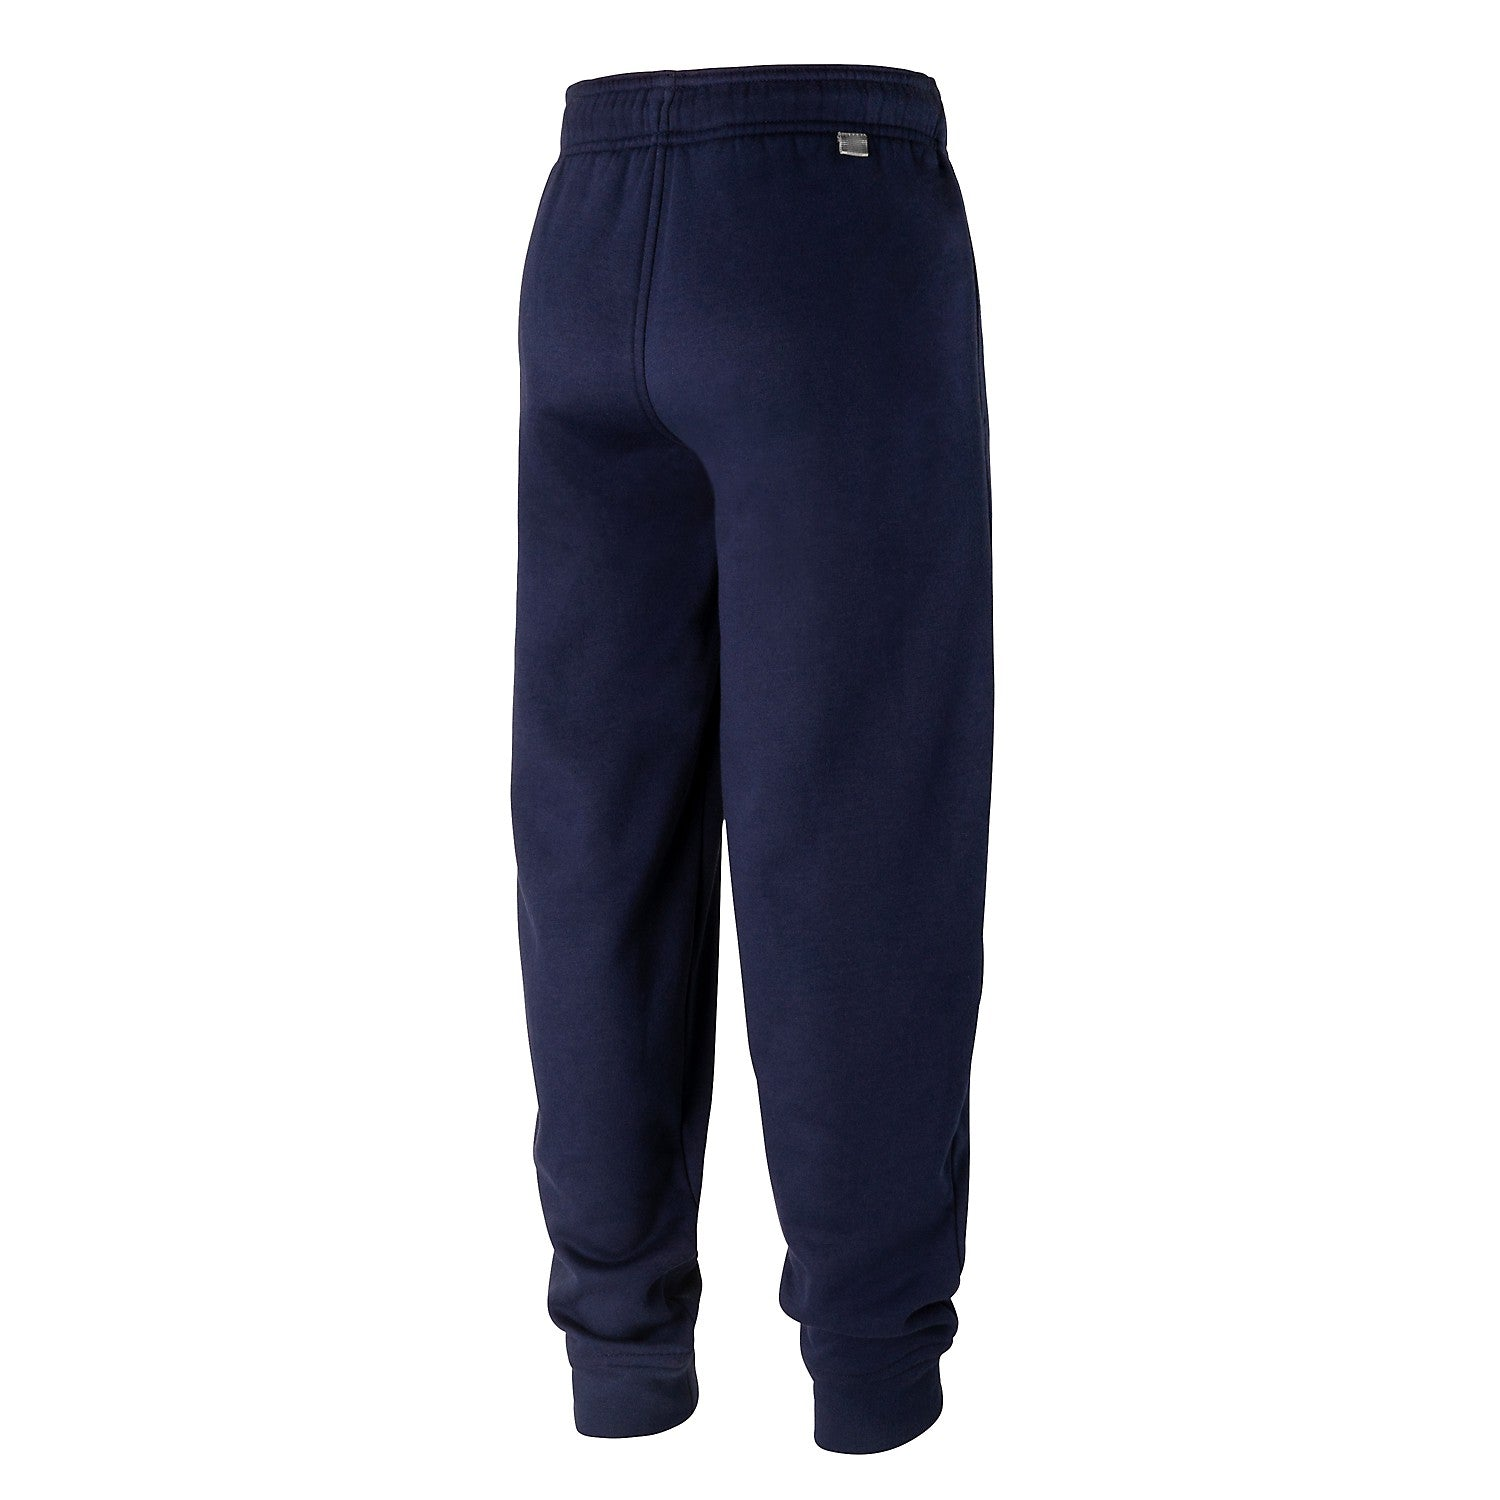 Speedo Youth Team Pant